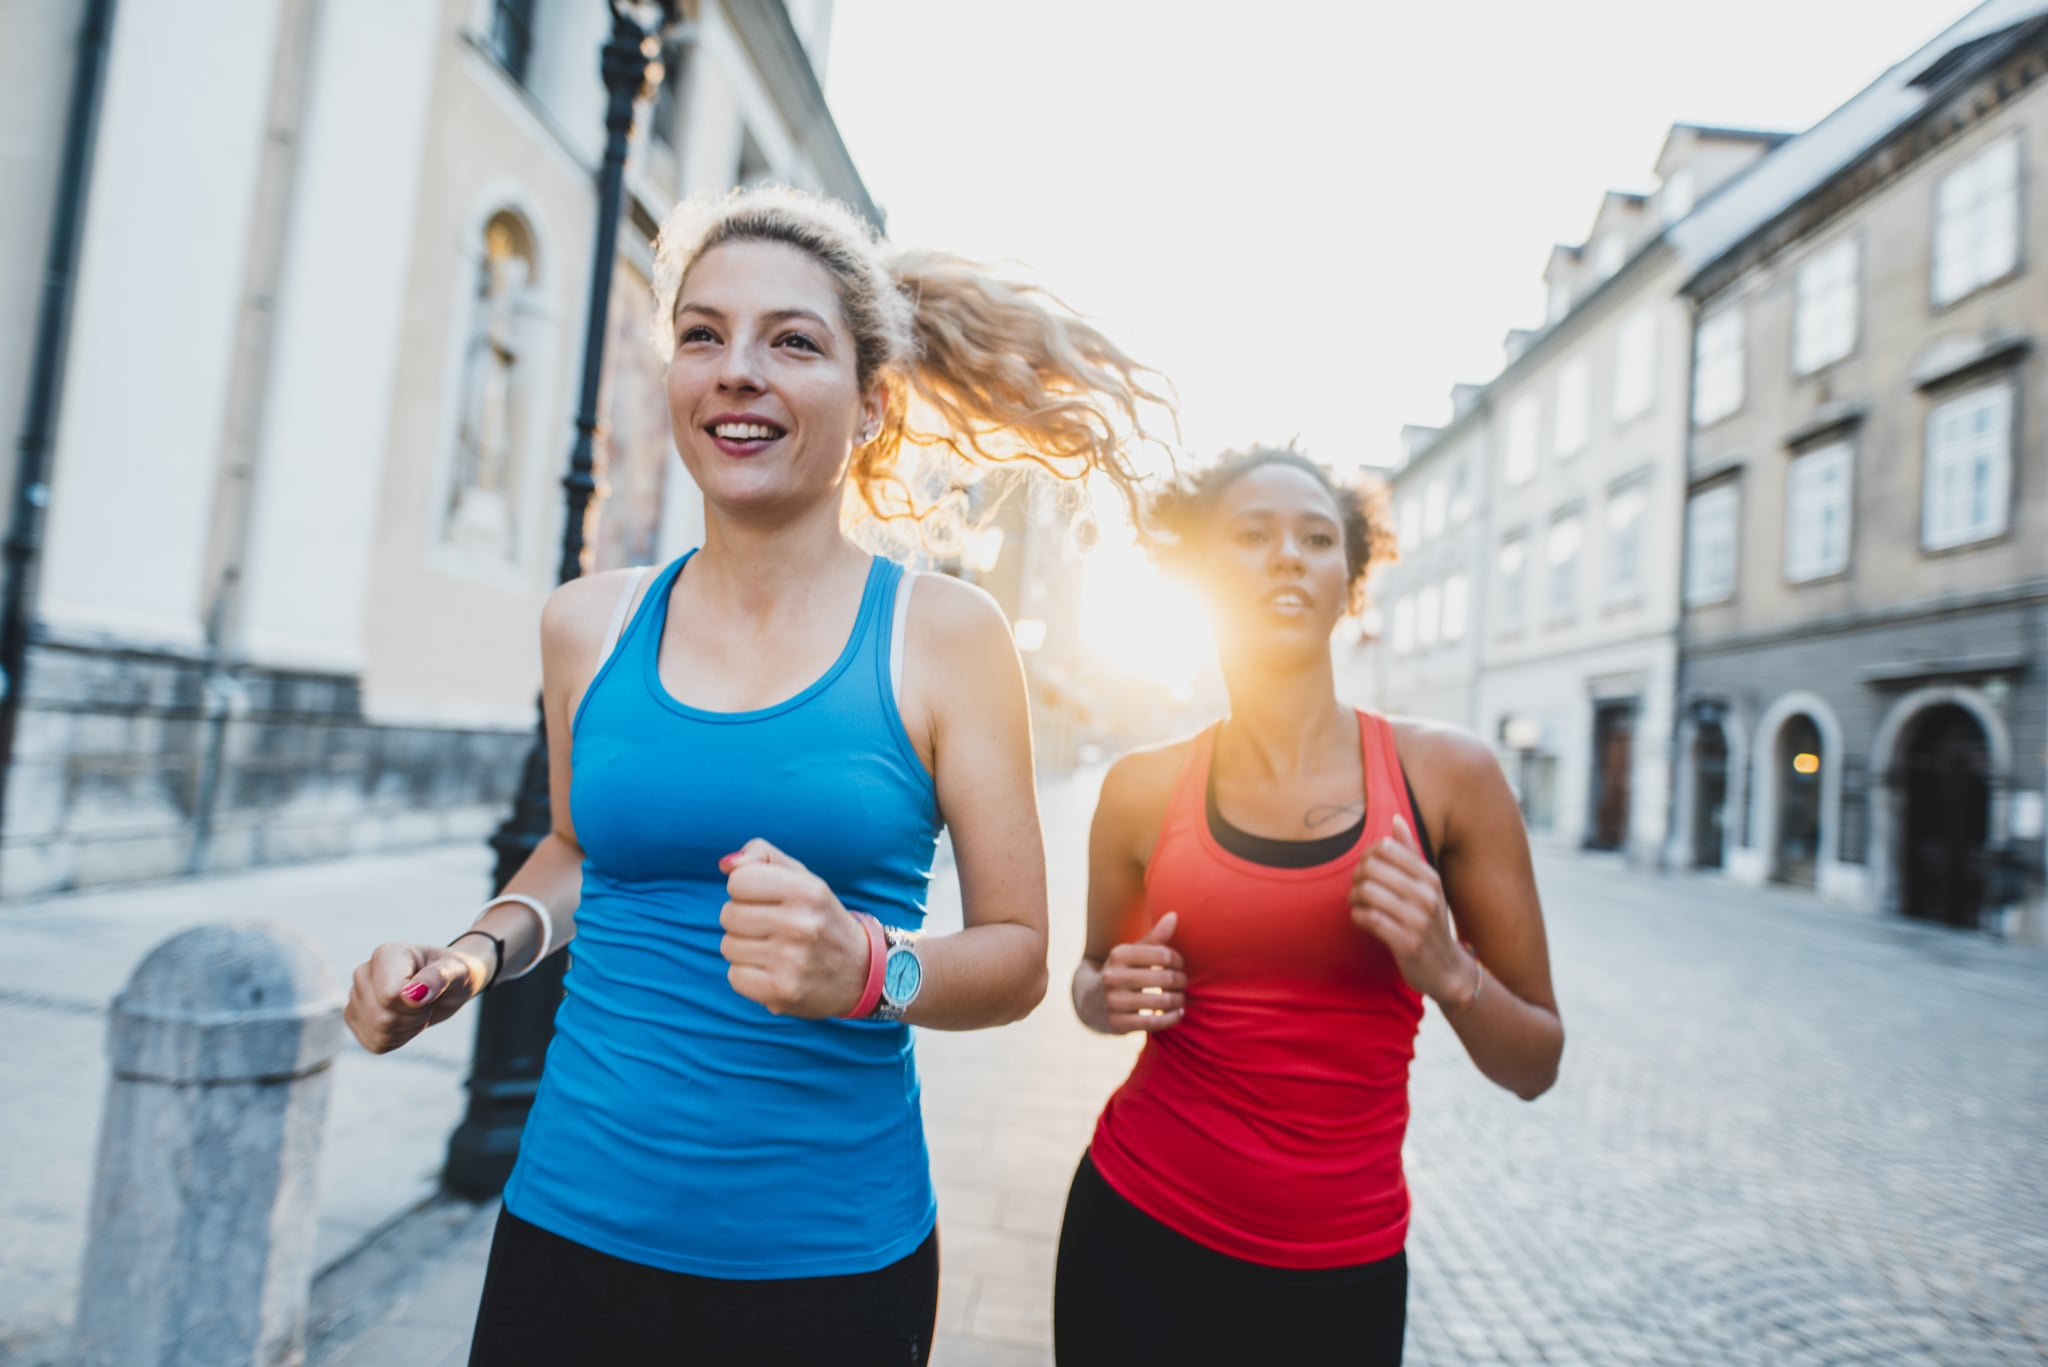 Running Fast Can Help You Lose Weight — Here's the Right Way to Do It, an Expert Says